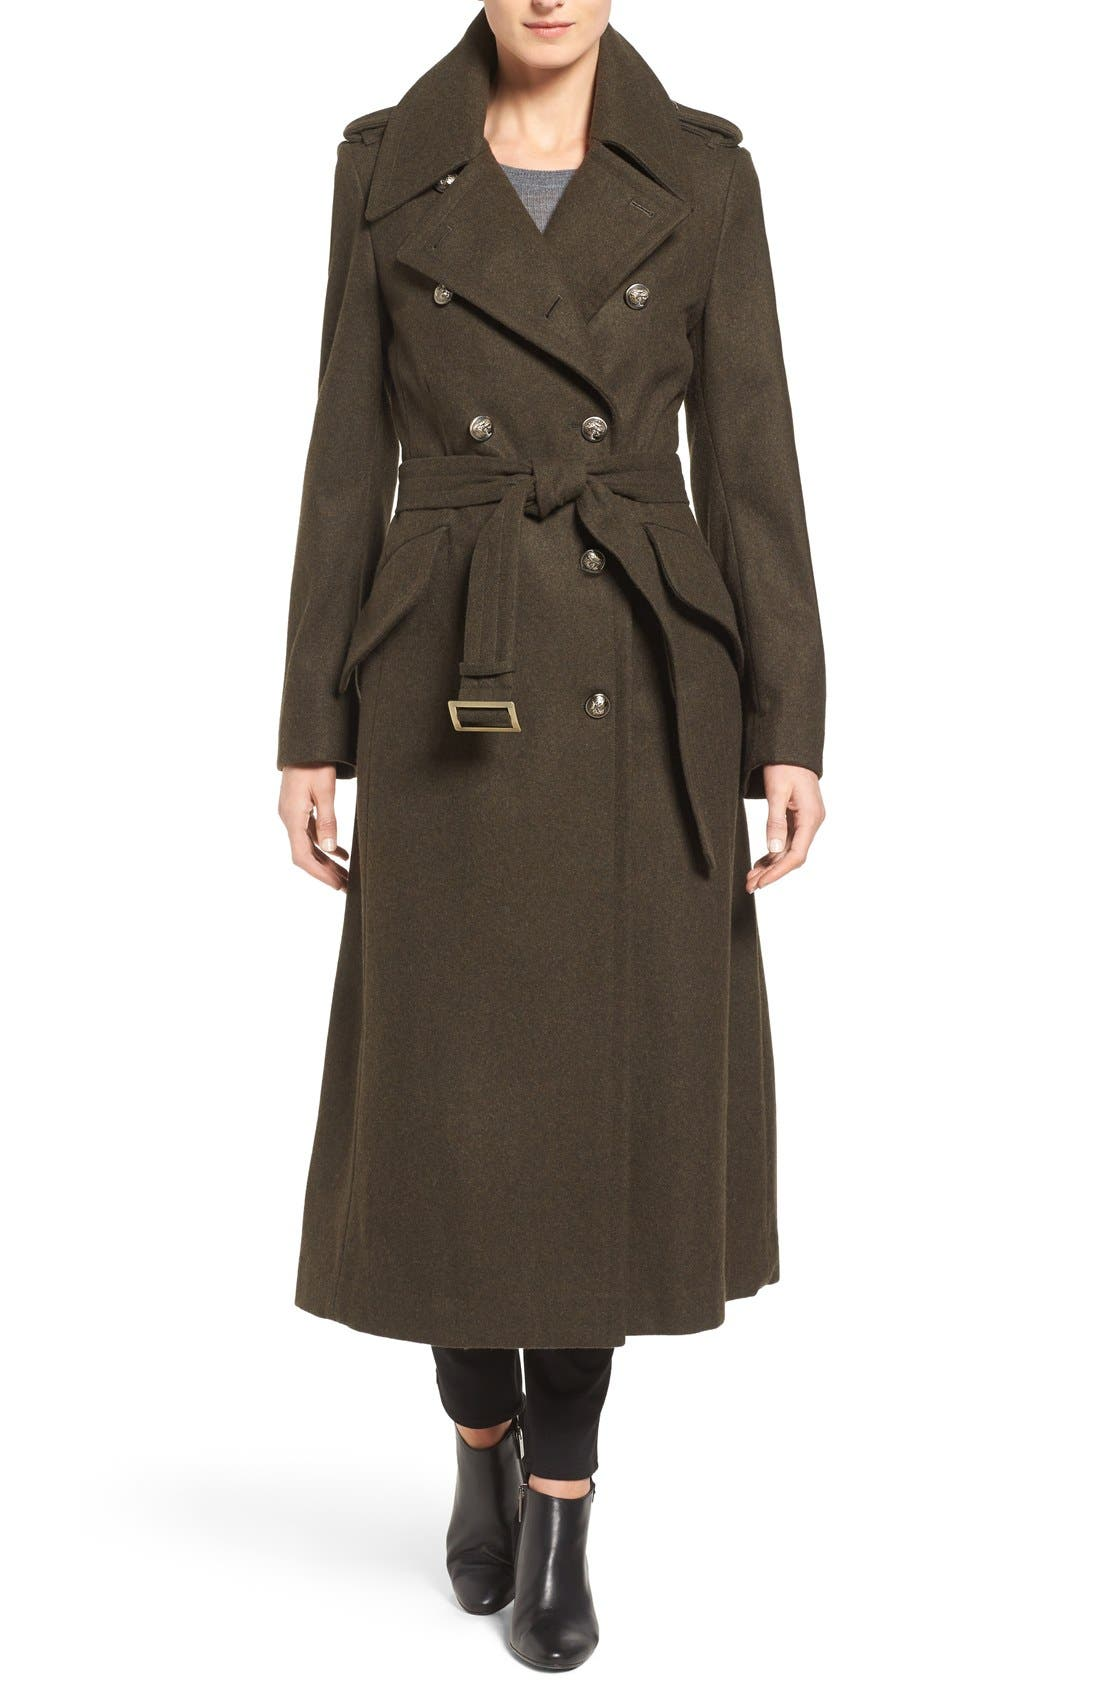 Alternate Image 1 Selected - London Fog Double Breasted Trench Coat